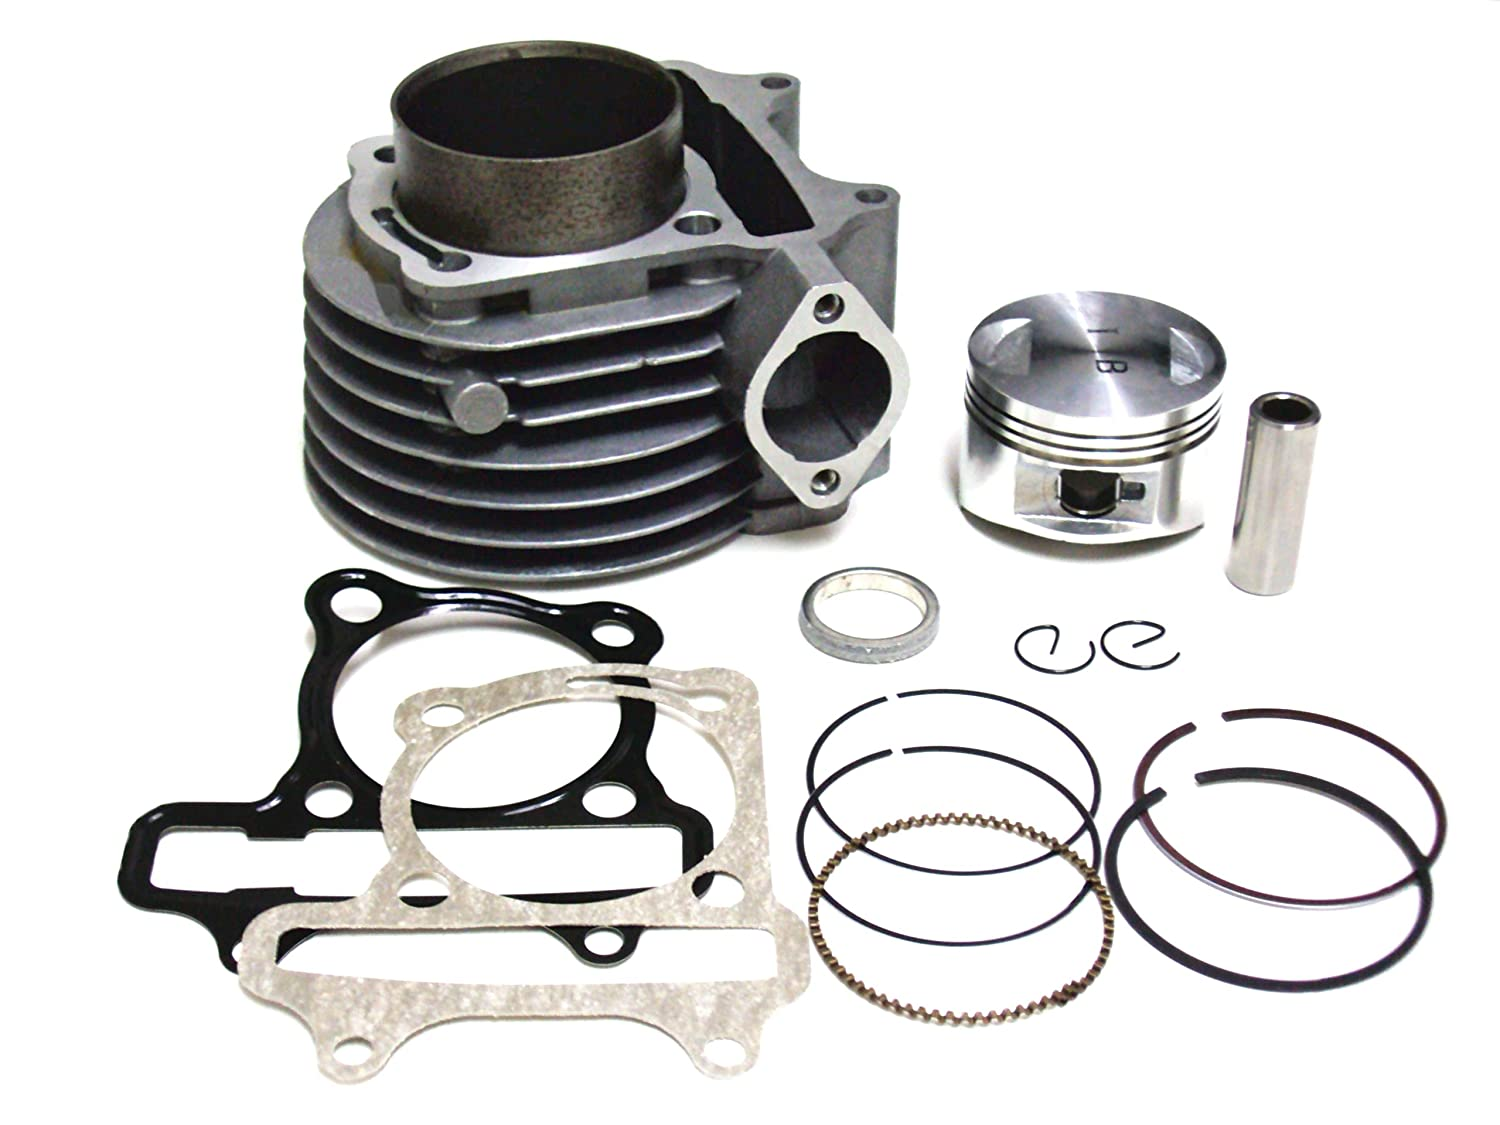 Complete Cylinder Kit 125cc 150cc 4 Stroke GY6 Chinese Scooters Moped ATV MMG MGGN0606-150